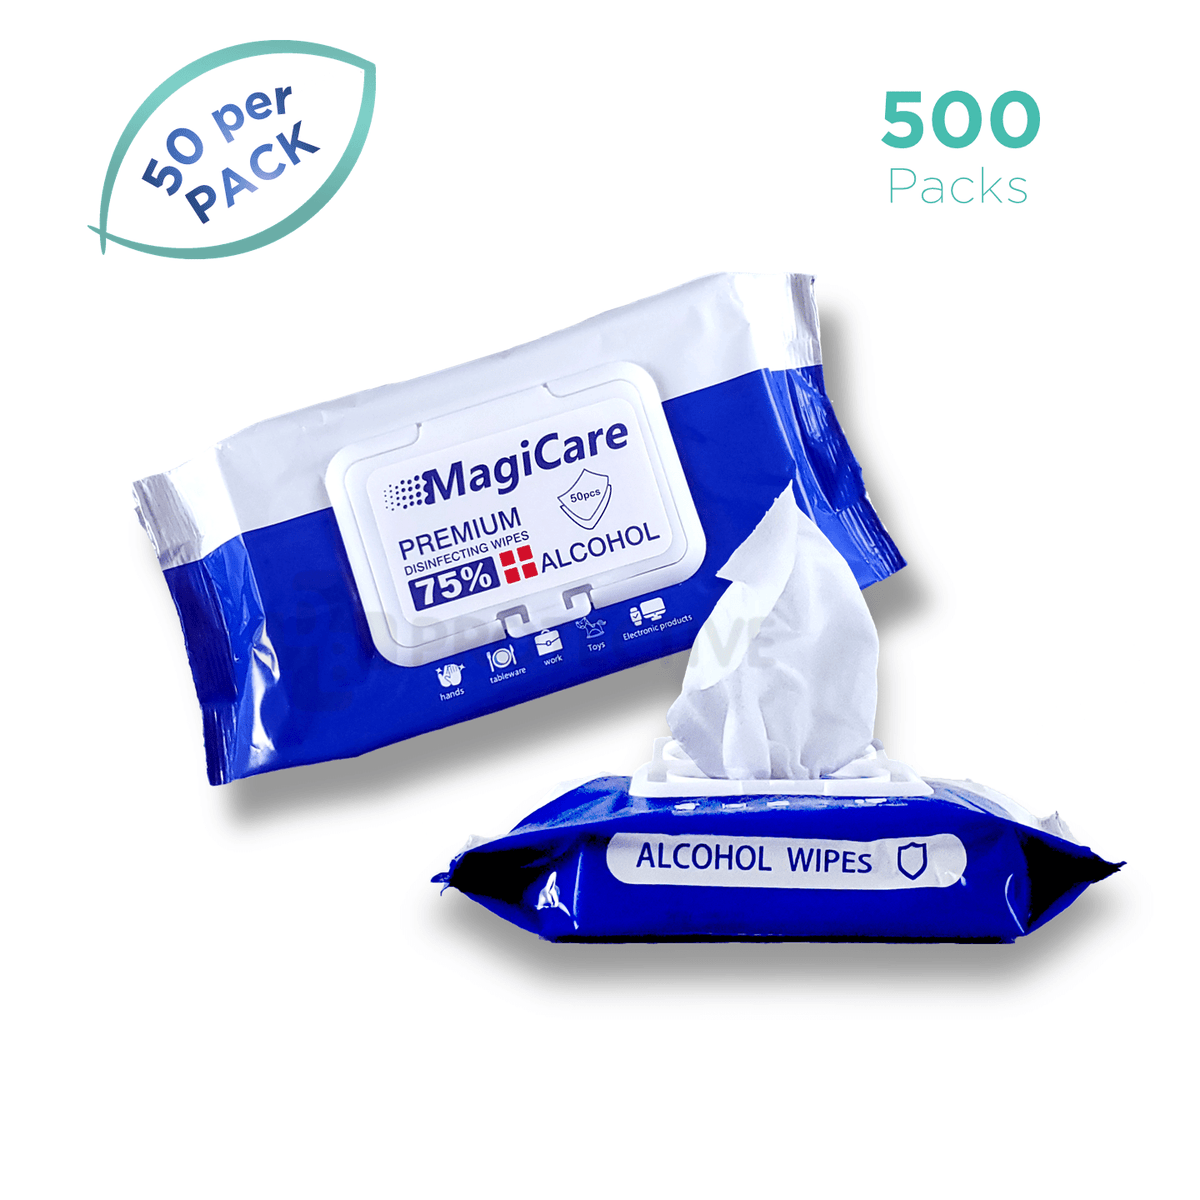 ALCOHOL WIPES -Disinfecting Sanitizing Wipes -  500 Packs.